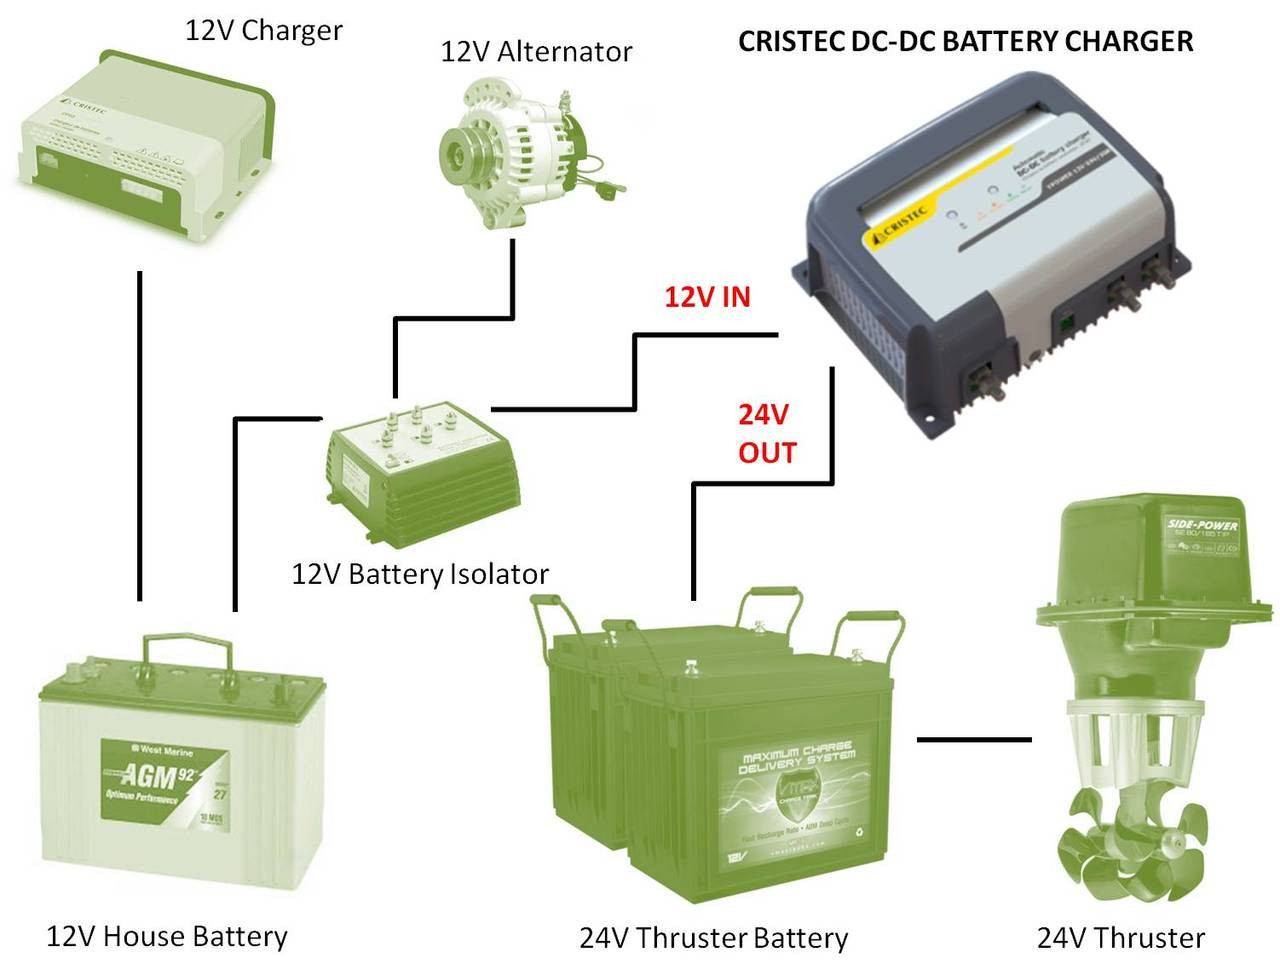 Cristec YPO12-24/30 - 30A 24V Charger from 12VDC Source on 12 volt 3 battery diagram, battery bank for solar panels, batteries in series diagram, battery bank transformer, battery bank connectors, battery to starter diagram, battery bank parts, battery bank voltage, battery for wind turbine, battery bank cover, battery bank charger, battery bank switch, 12 volt battery equalization diagram, battery bank box, battery cable connectors, battery bank assembly, battery charger schematic diagram, battery bank cabinet, 24 volt battery diagram, solar battery bank diagram,